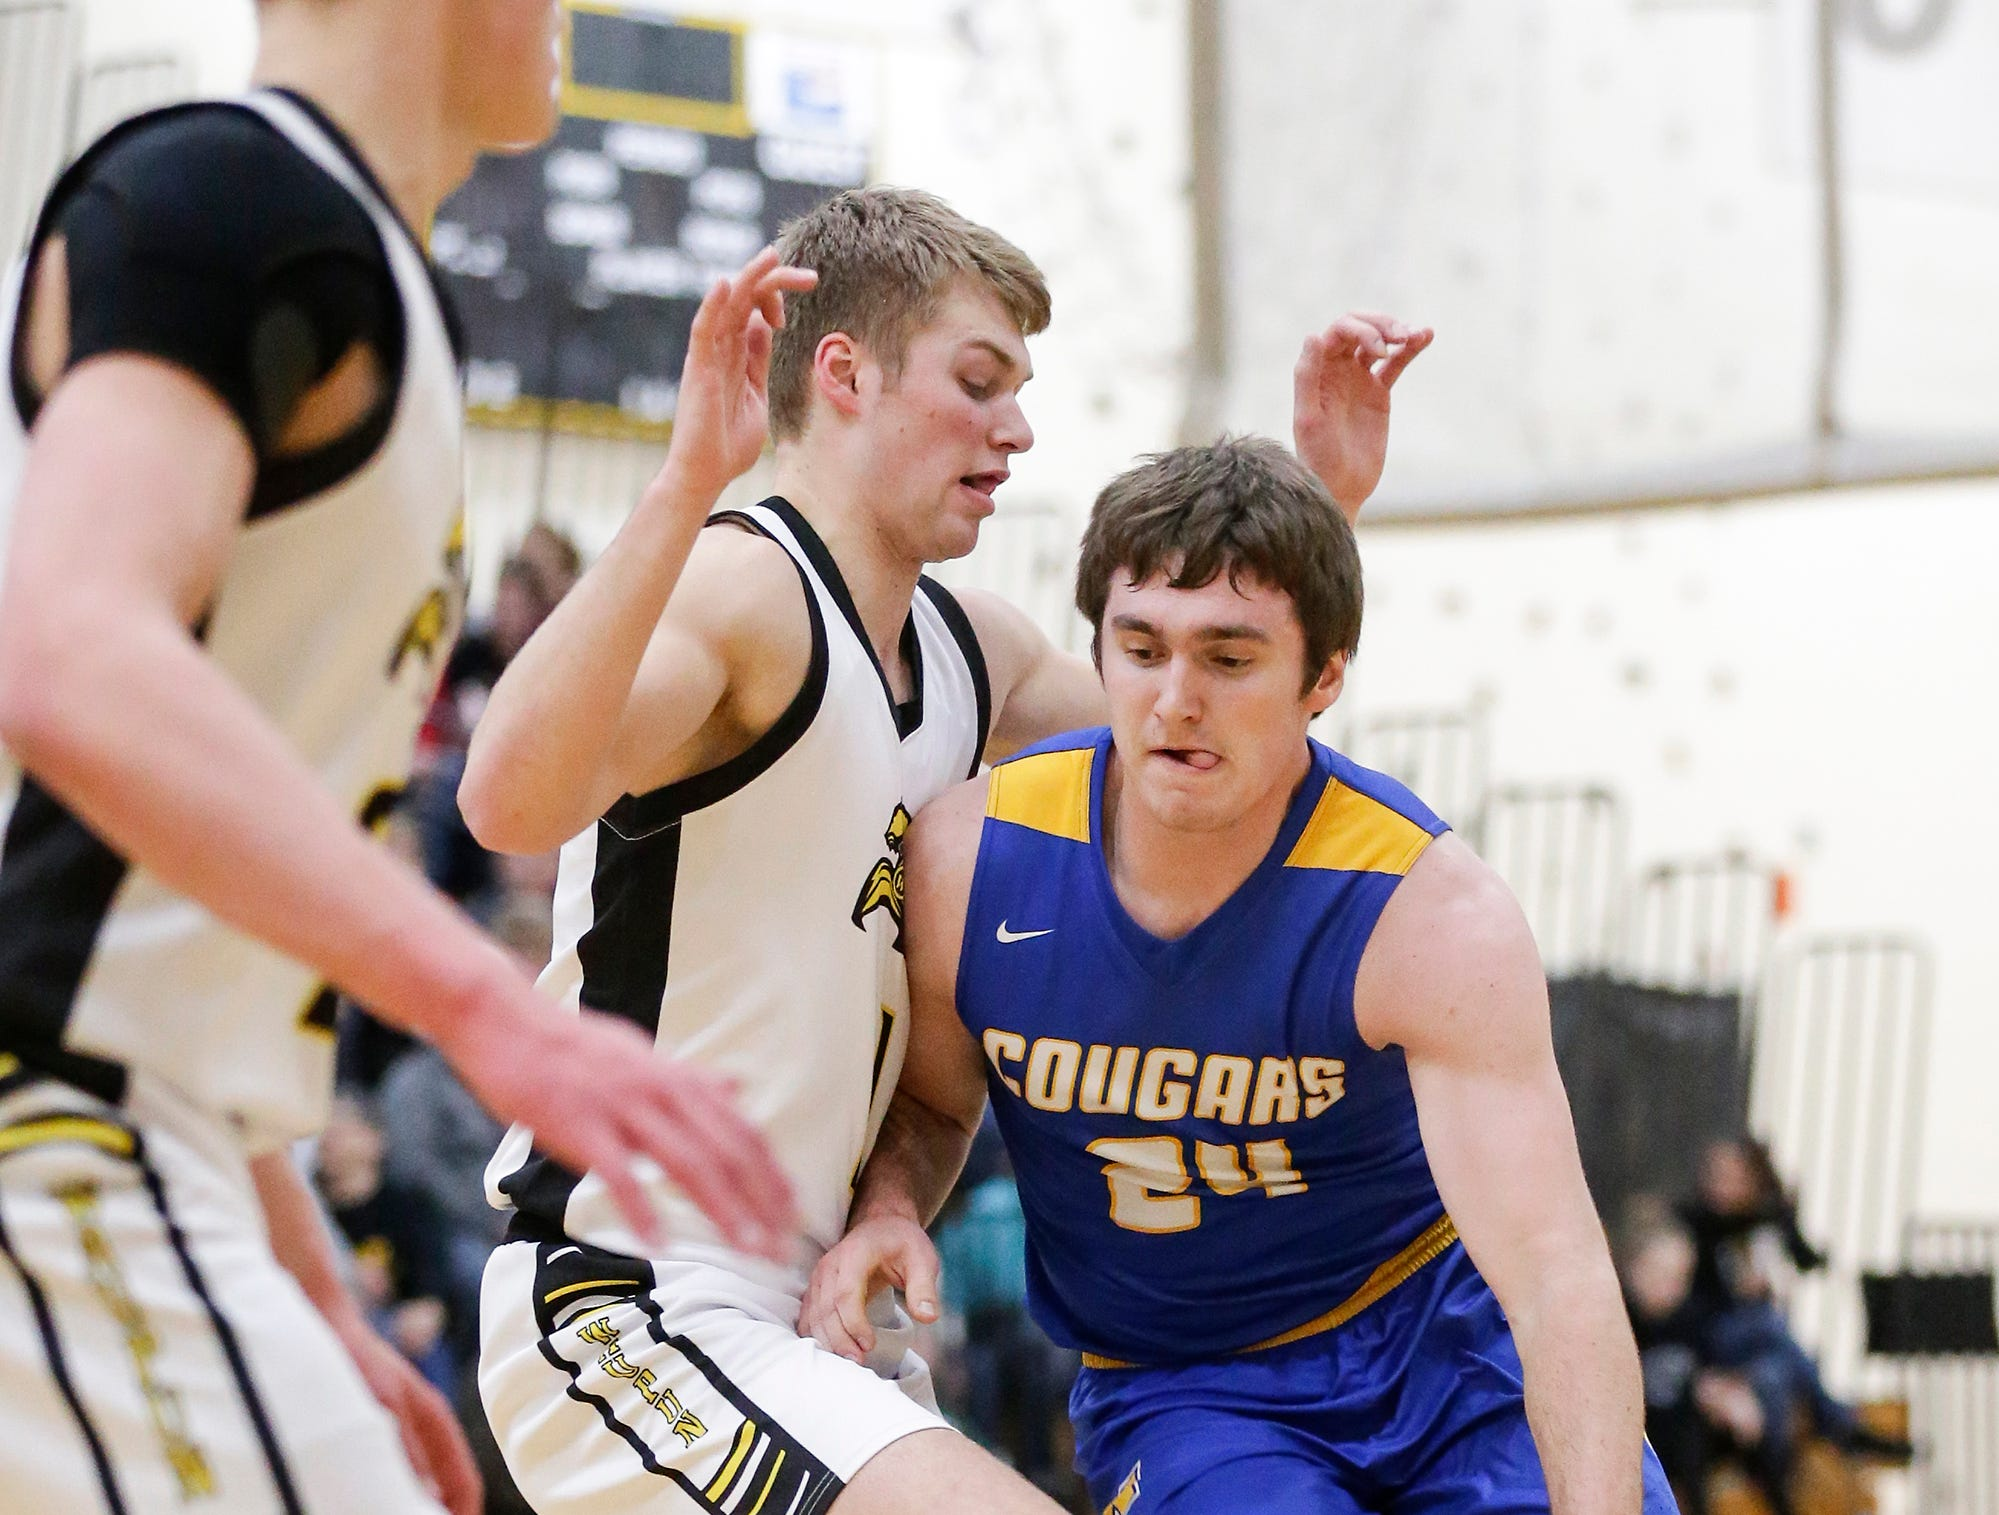 Campbellsport High School boys basketball's Nicholas Narges works his way past Waupun High School's Marcus Domask during their game Friday, December 14, 2018 in Waupun. Waupun won the game 64-33. Doug Raflik/USA TODAY NETWORK-Wisconsin